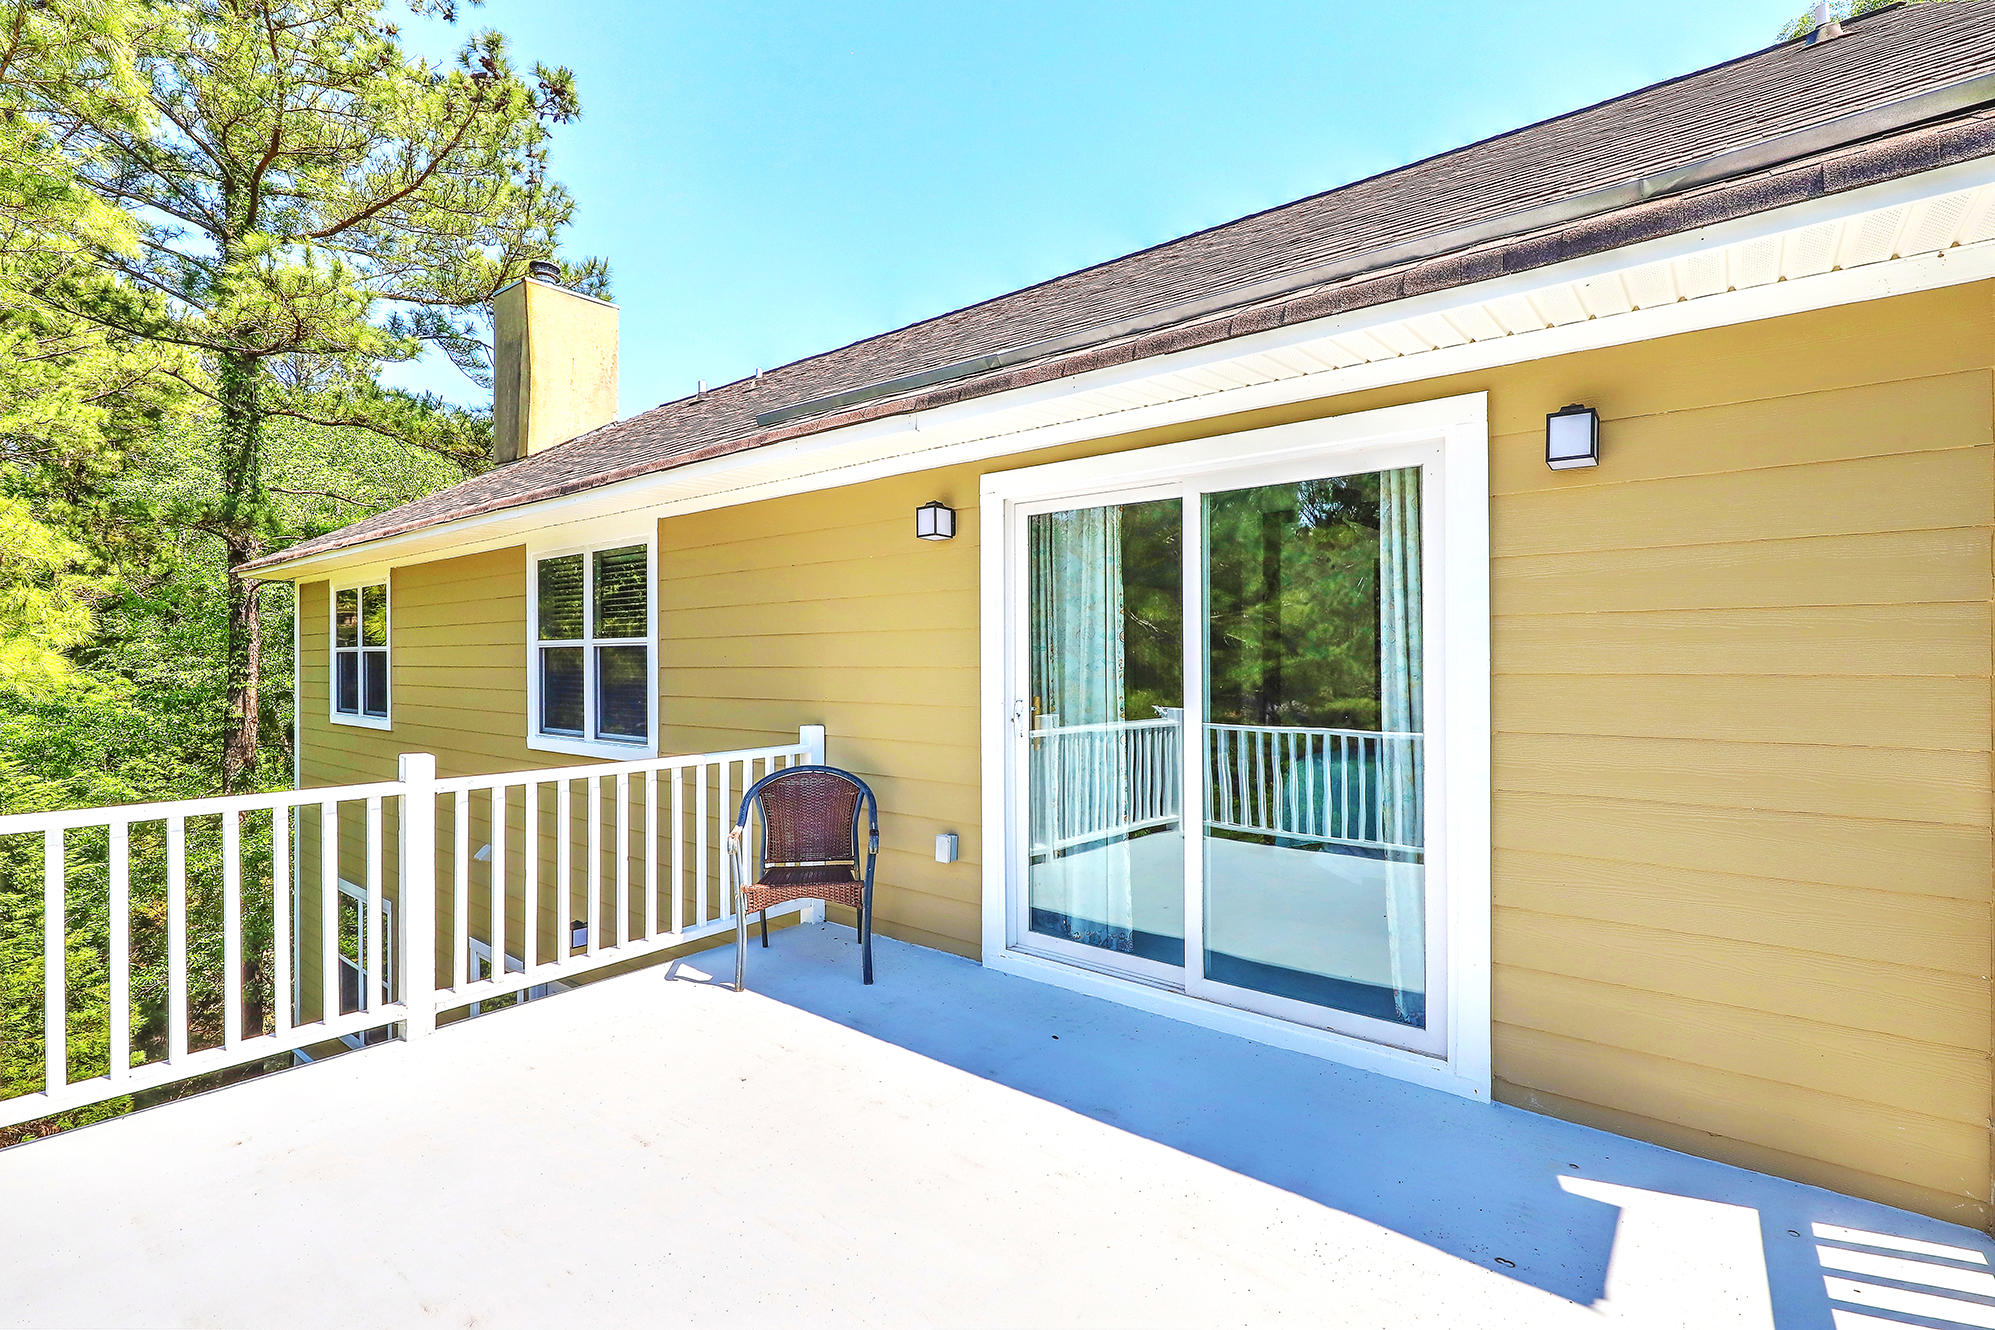 Stono Ferry Homes For Sale - 5104 St Ann, Hollywood, SC - 56